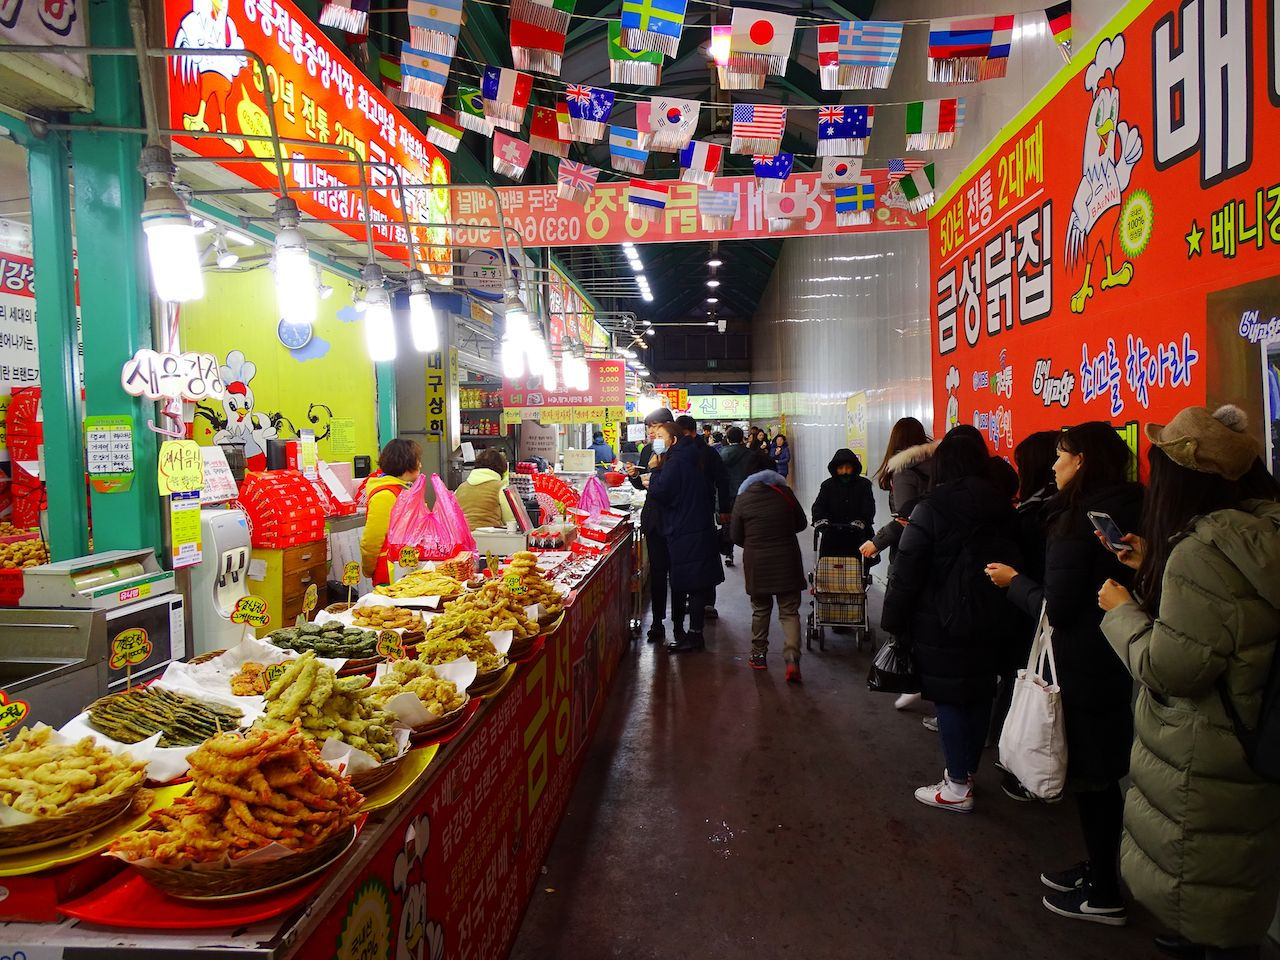 Shoppers at a market in Gangneung, South Korea